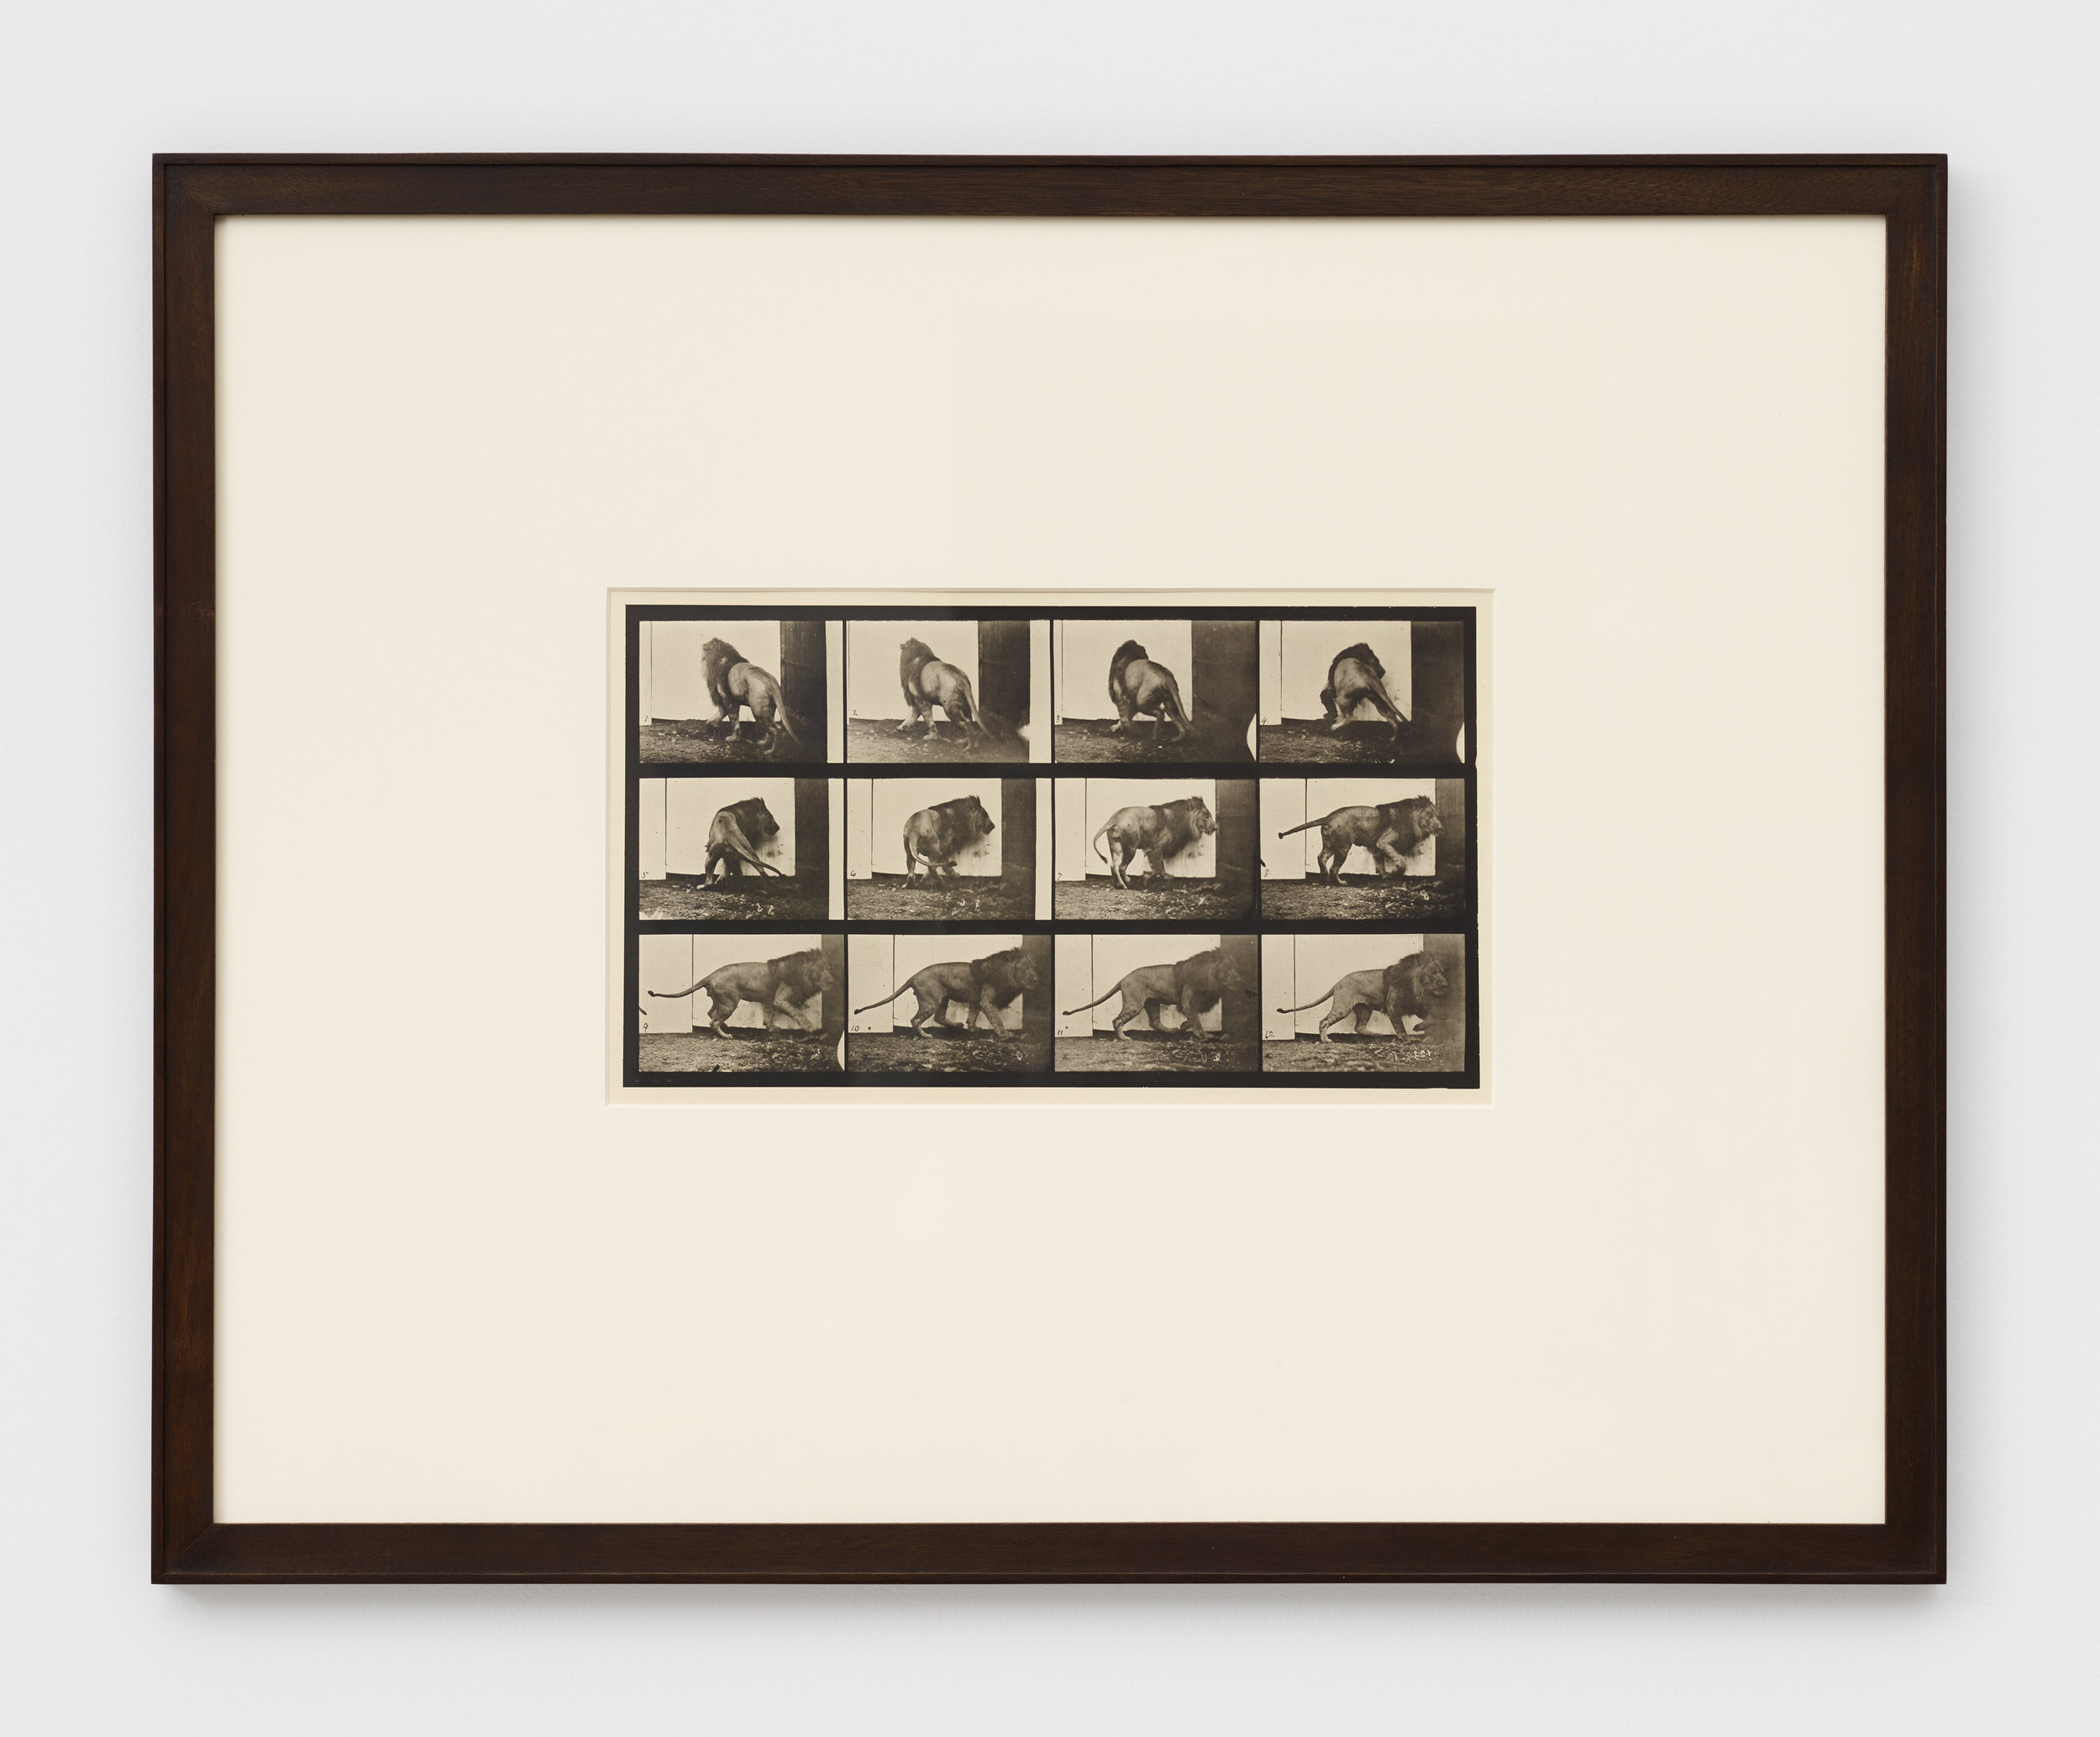 Eadweard Muybridge, Lion Walking and Turning Around, 1887, Collotype.